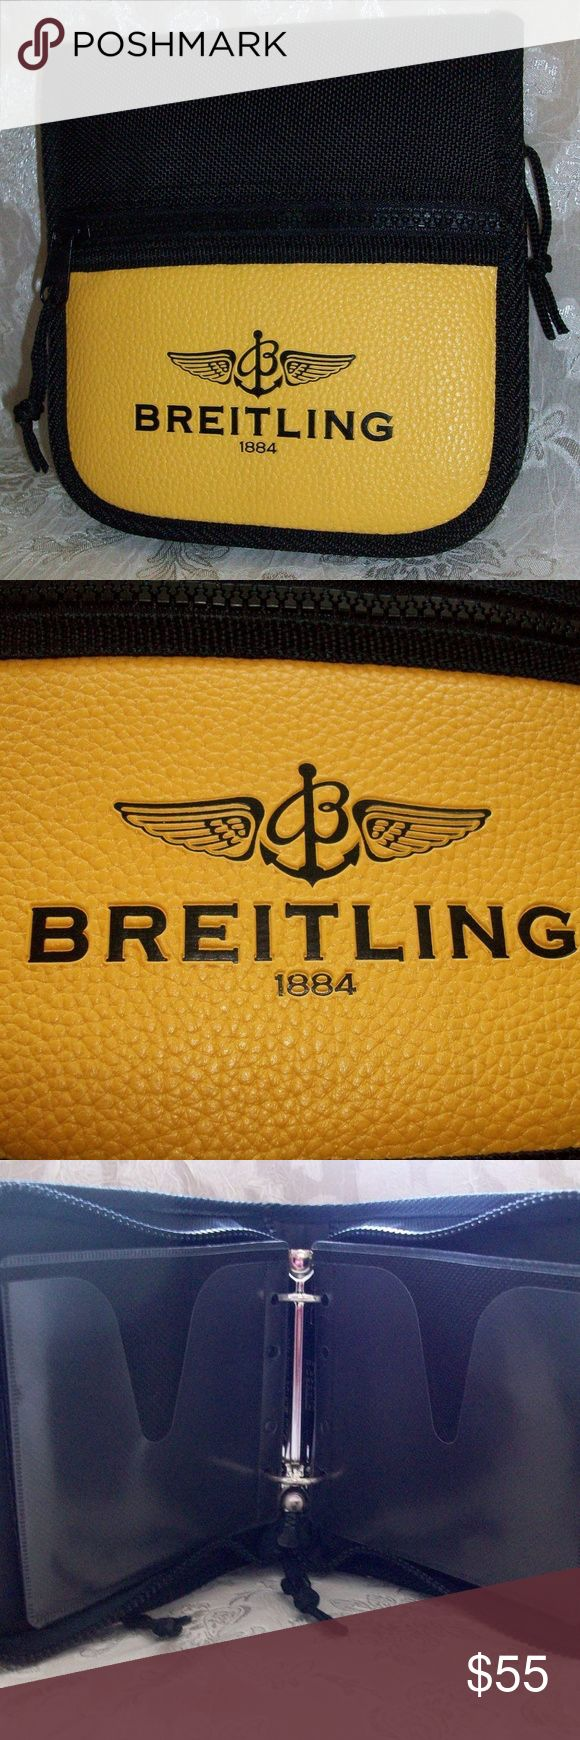 Breitling CD Case Authentic Breitling CD case. Brand new and never used. Breitling Accessories Watches